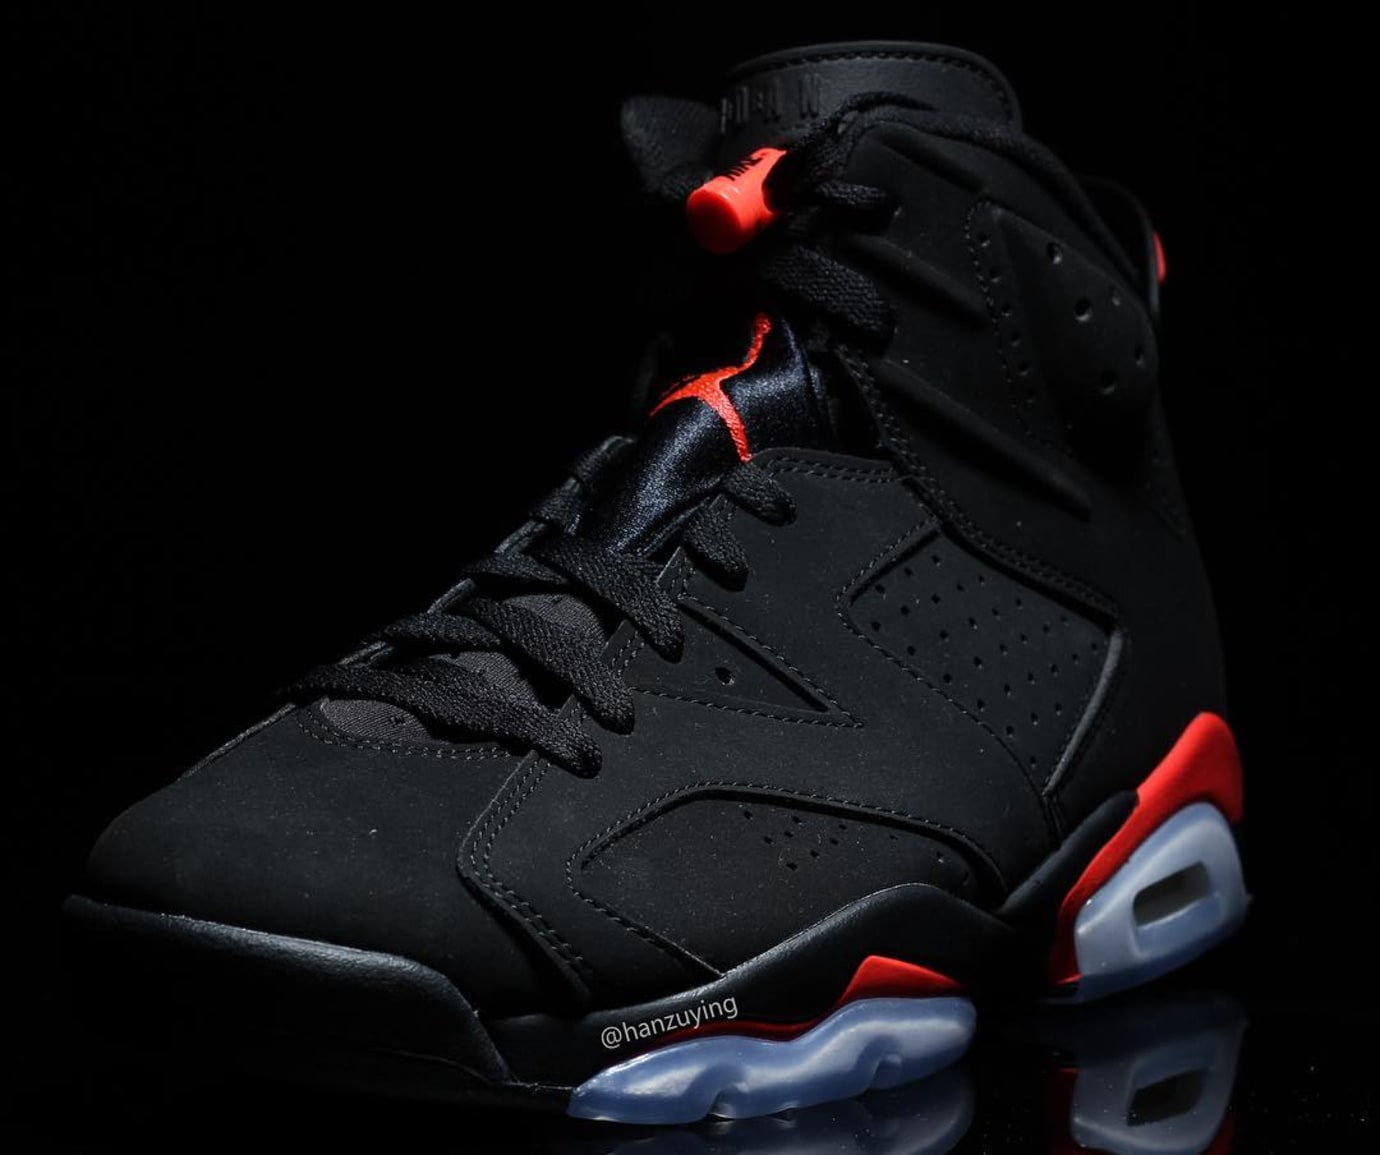 best service c723e b71b0 ... style code ci3125 401. release date january 2019. price 200 81235  30e6e  uk image via hanzuying air jordan 6 black infrared 2019 early look  2be31 1a44e